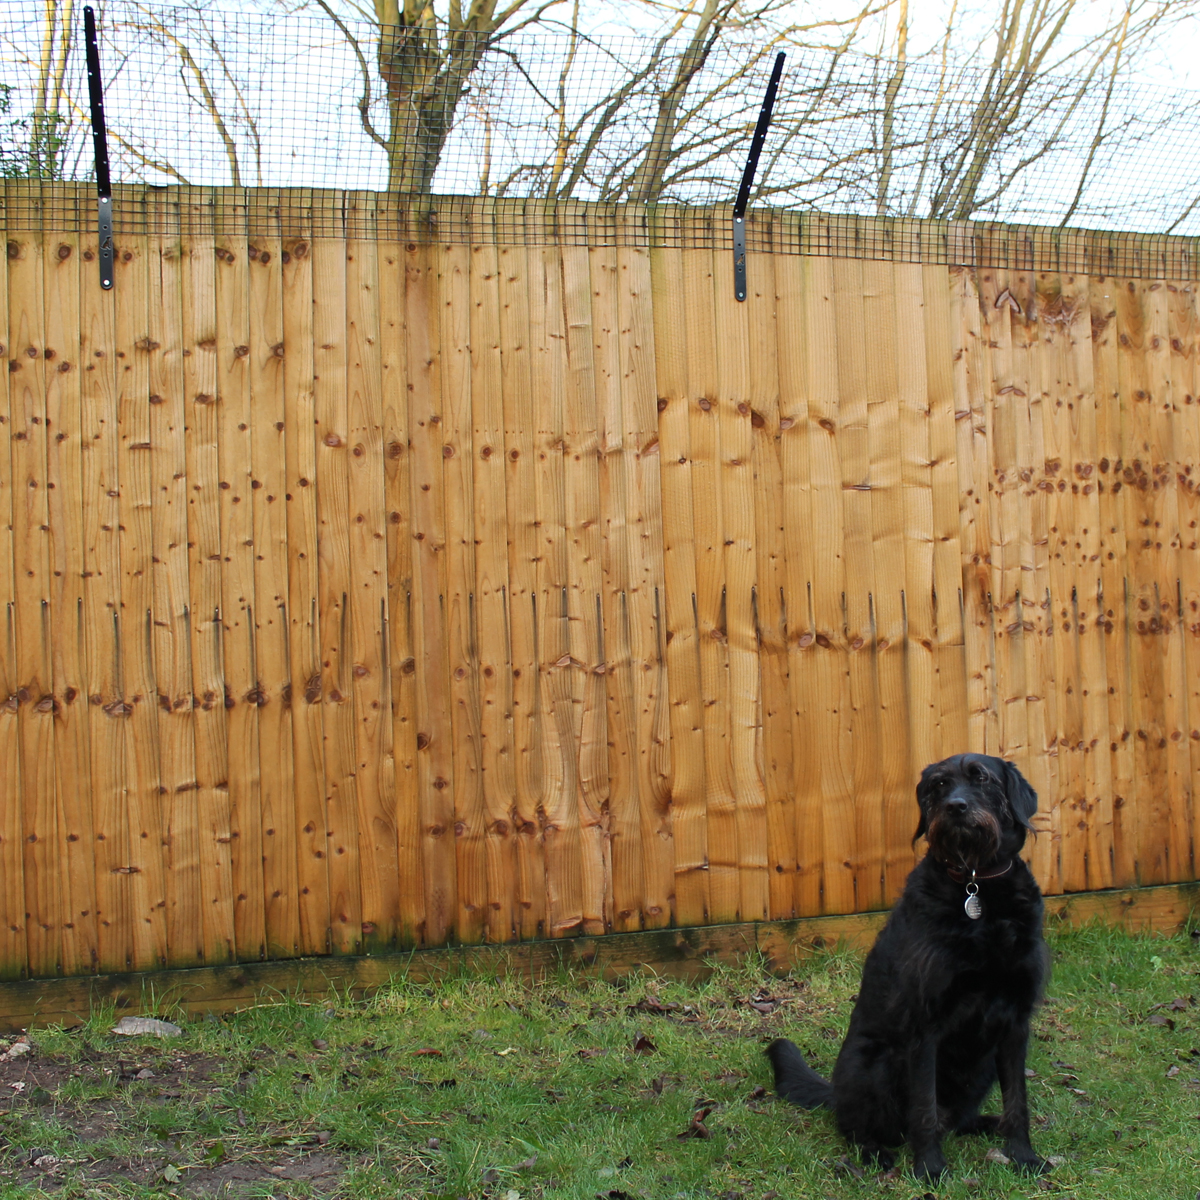 Introducing ProtectaPup: Dog Fencetop Brackets